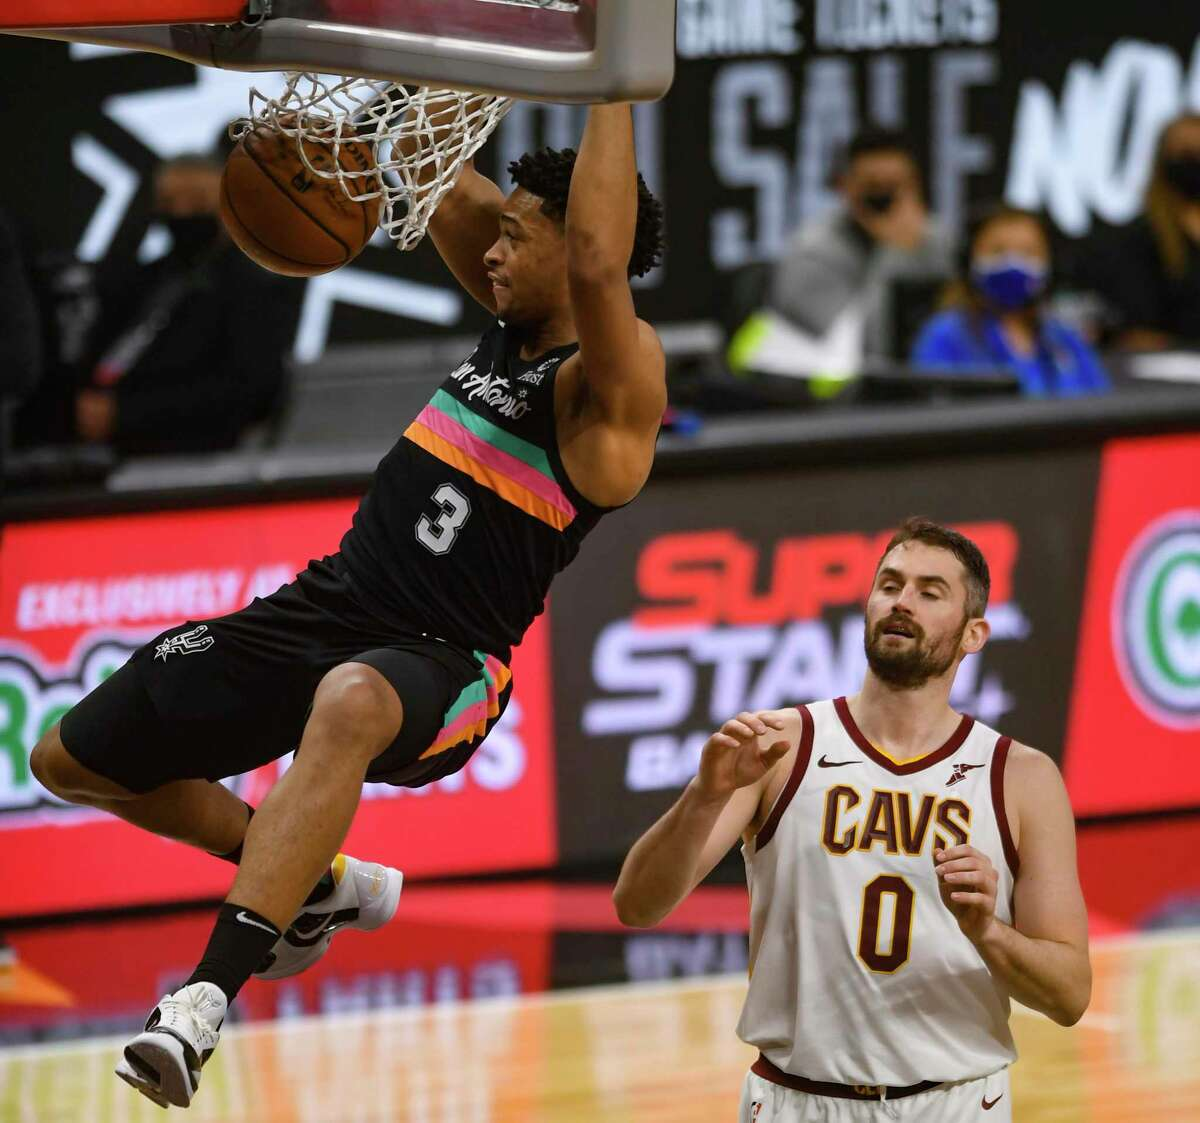 Keldon Johnson of the San Antonio Spurs dunks as Kevin Love of the Cleveland Cavaliers stands by during NBA action in the AT&T Center on Monday, April 5, 2021.